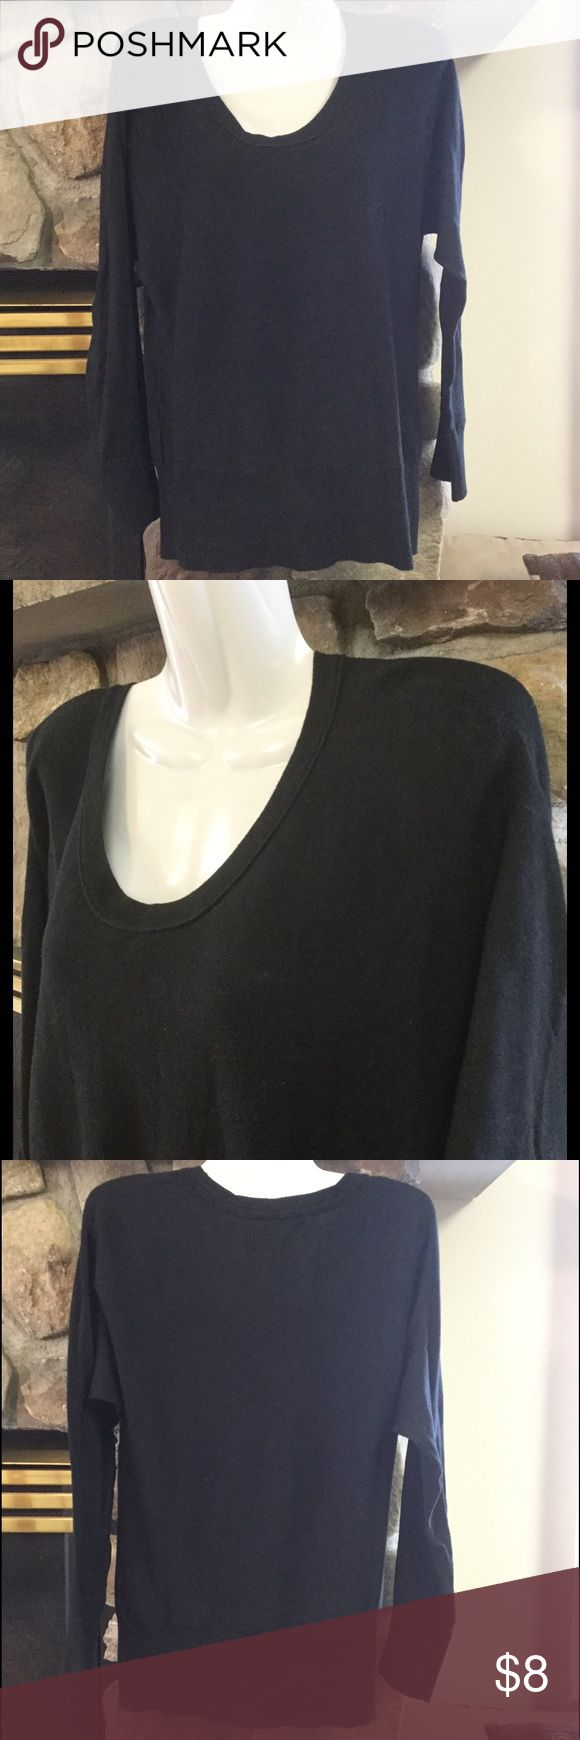 GAP Small Black Fine Knit Scoop Neck Sweater GAP Brand Size Small Black Scoop Neck Sweater. Bundle & Save On Shipping. GAP Sweaters Crew & Scoop Necks